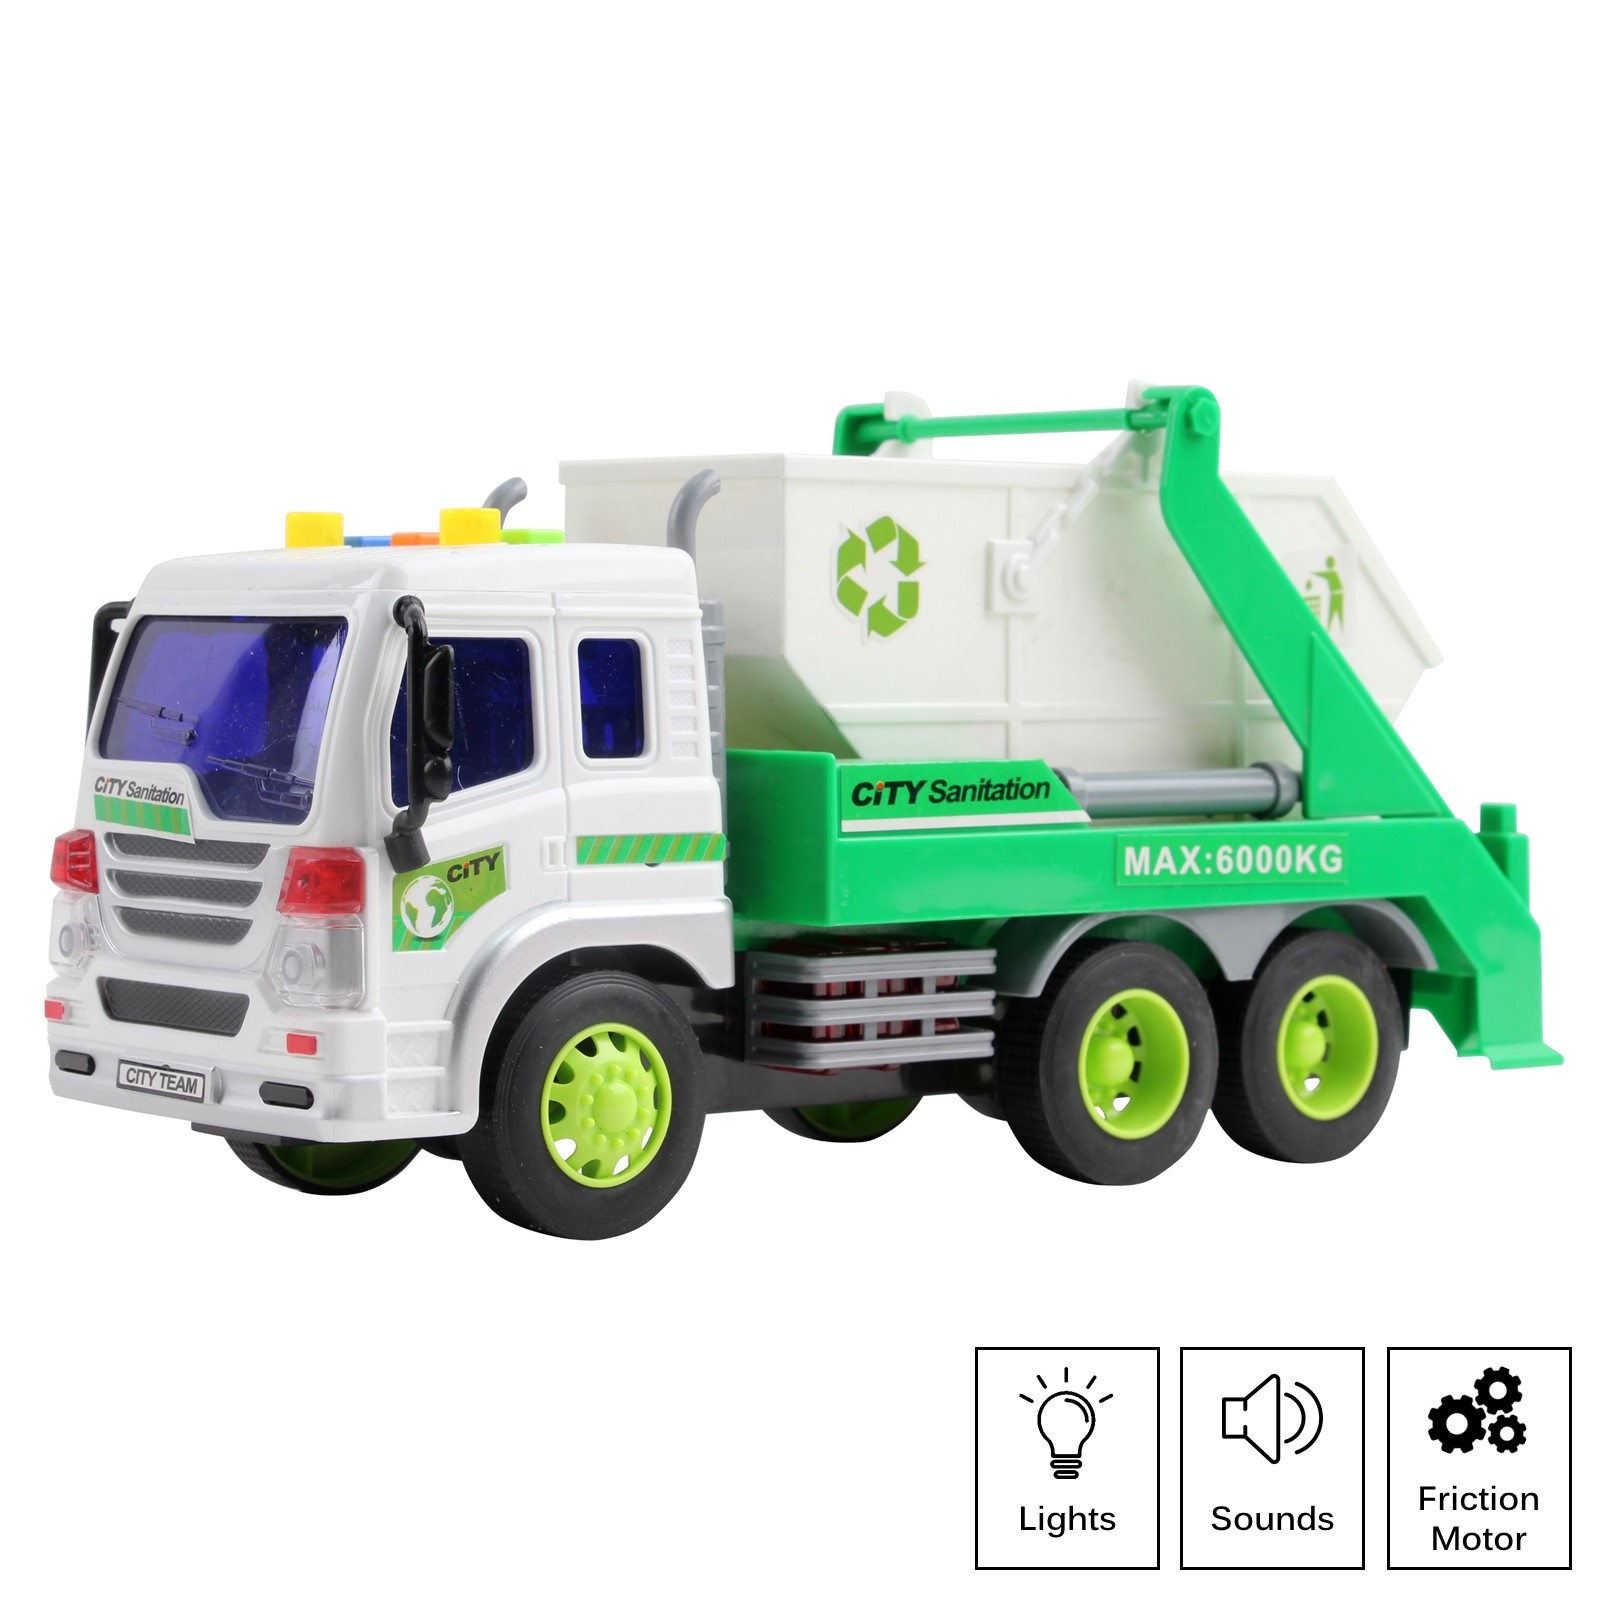 Friction Powered Garbage Truck With Lights And Sounds Lift Up Body 1:16 Scale Durable Kids Dump Sanitation Push And Go Toy Car Pretend Play Transport Vehicle Great Gift For Children Boys Girls